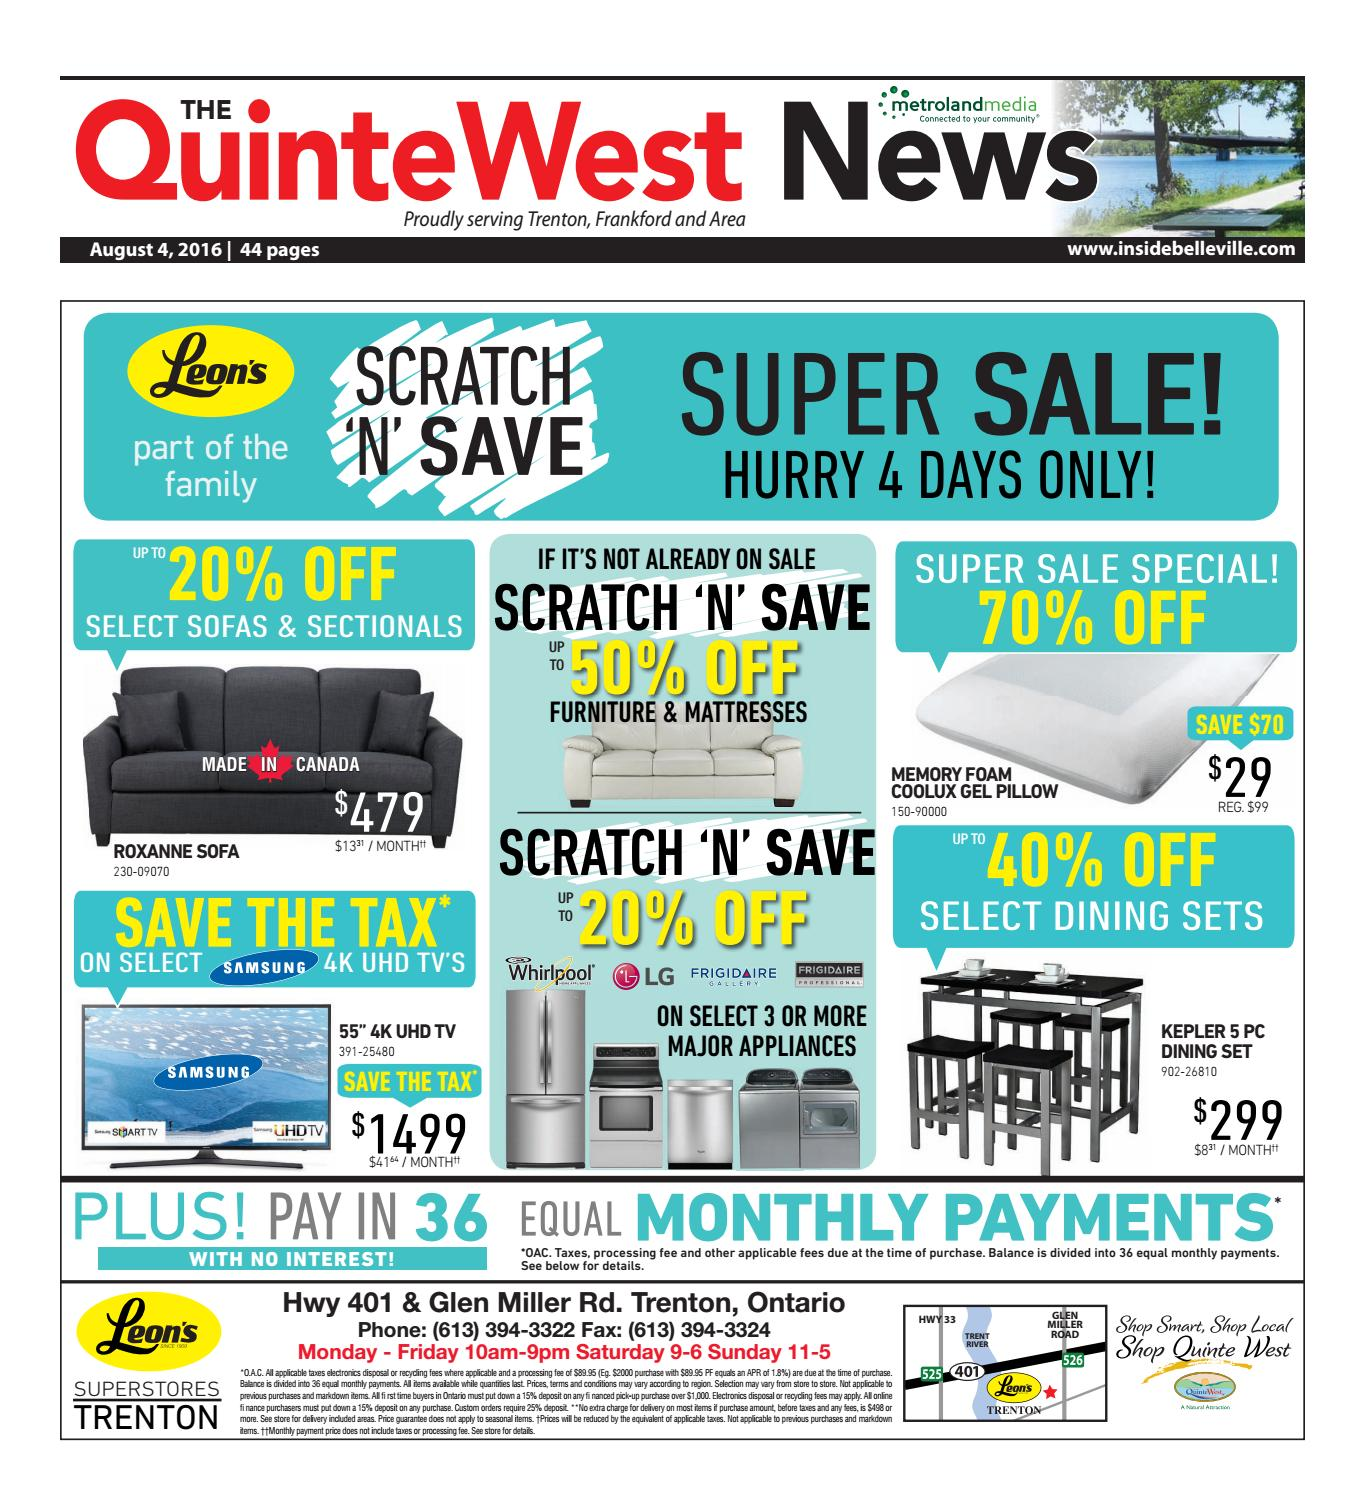 Quinte080416 by Metroland East - Quinte West News - issuu